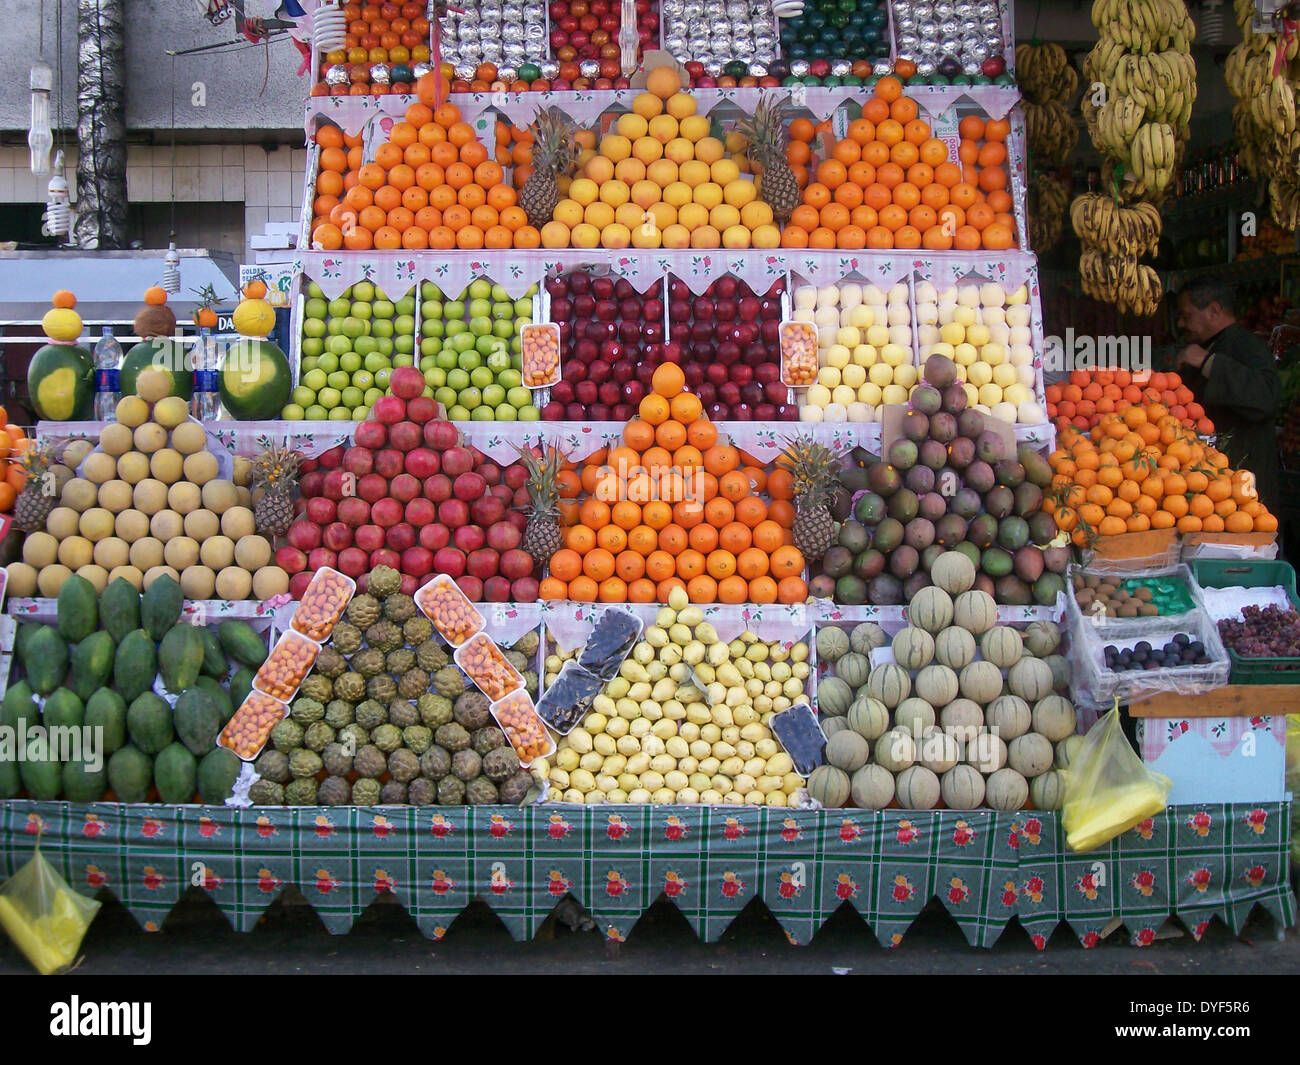 Fruit stall, Sharm El Sheikh, Egypt, 2009. The visual art of displaying fruit on a market stall. - Stock Image